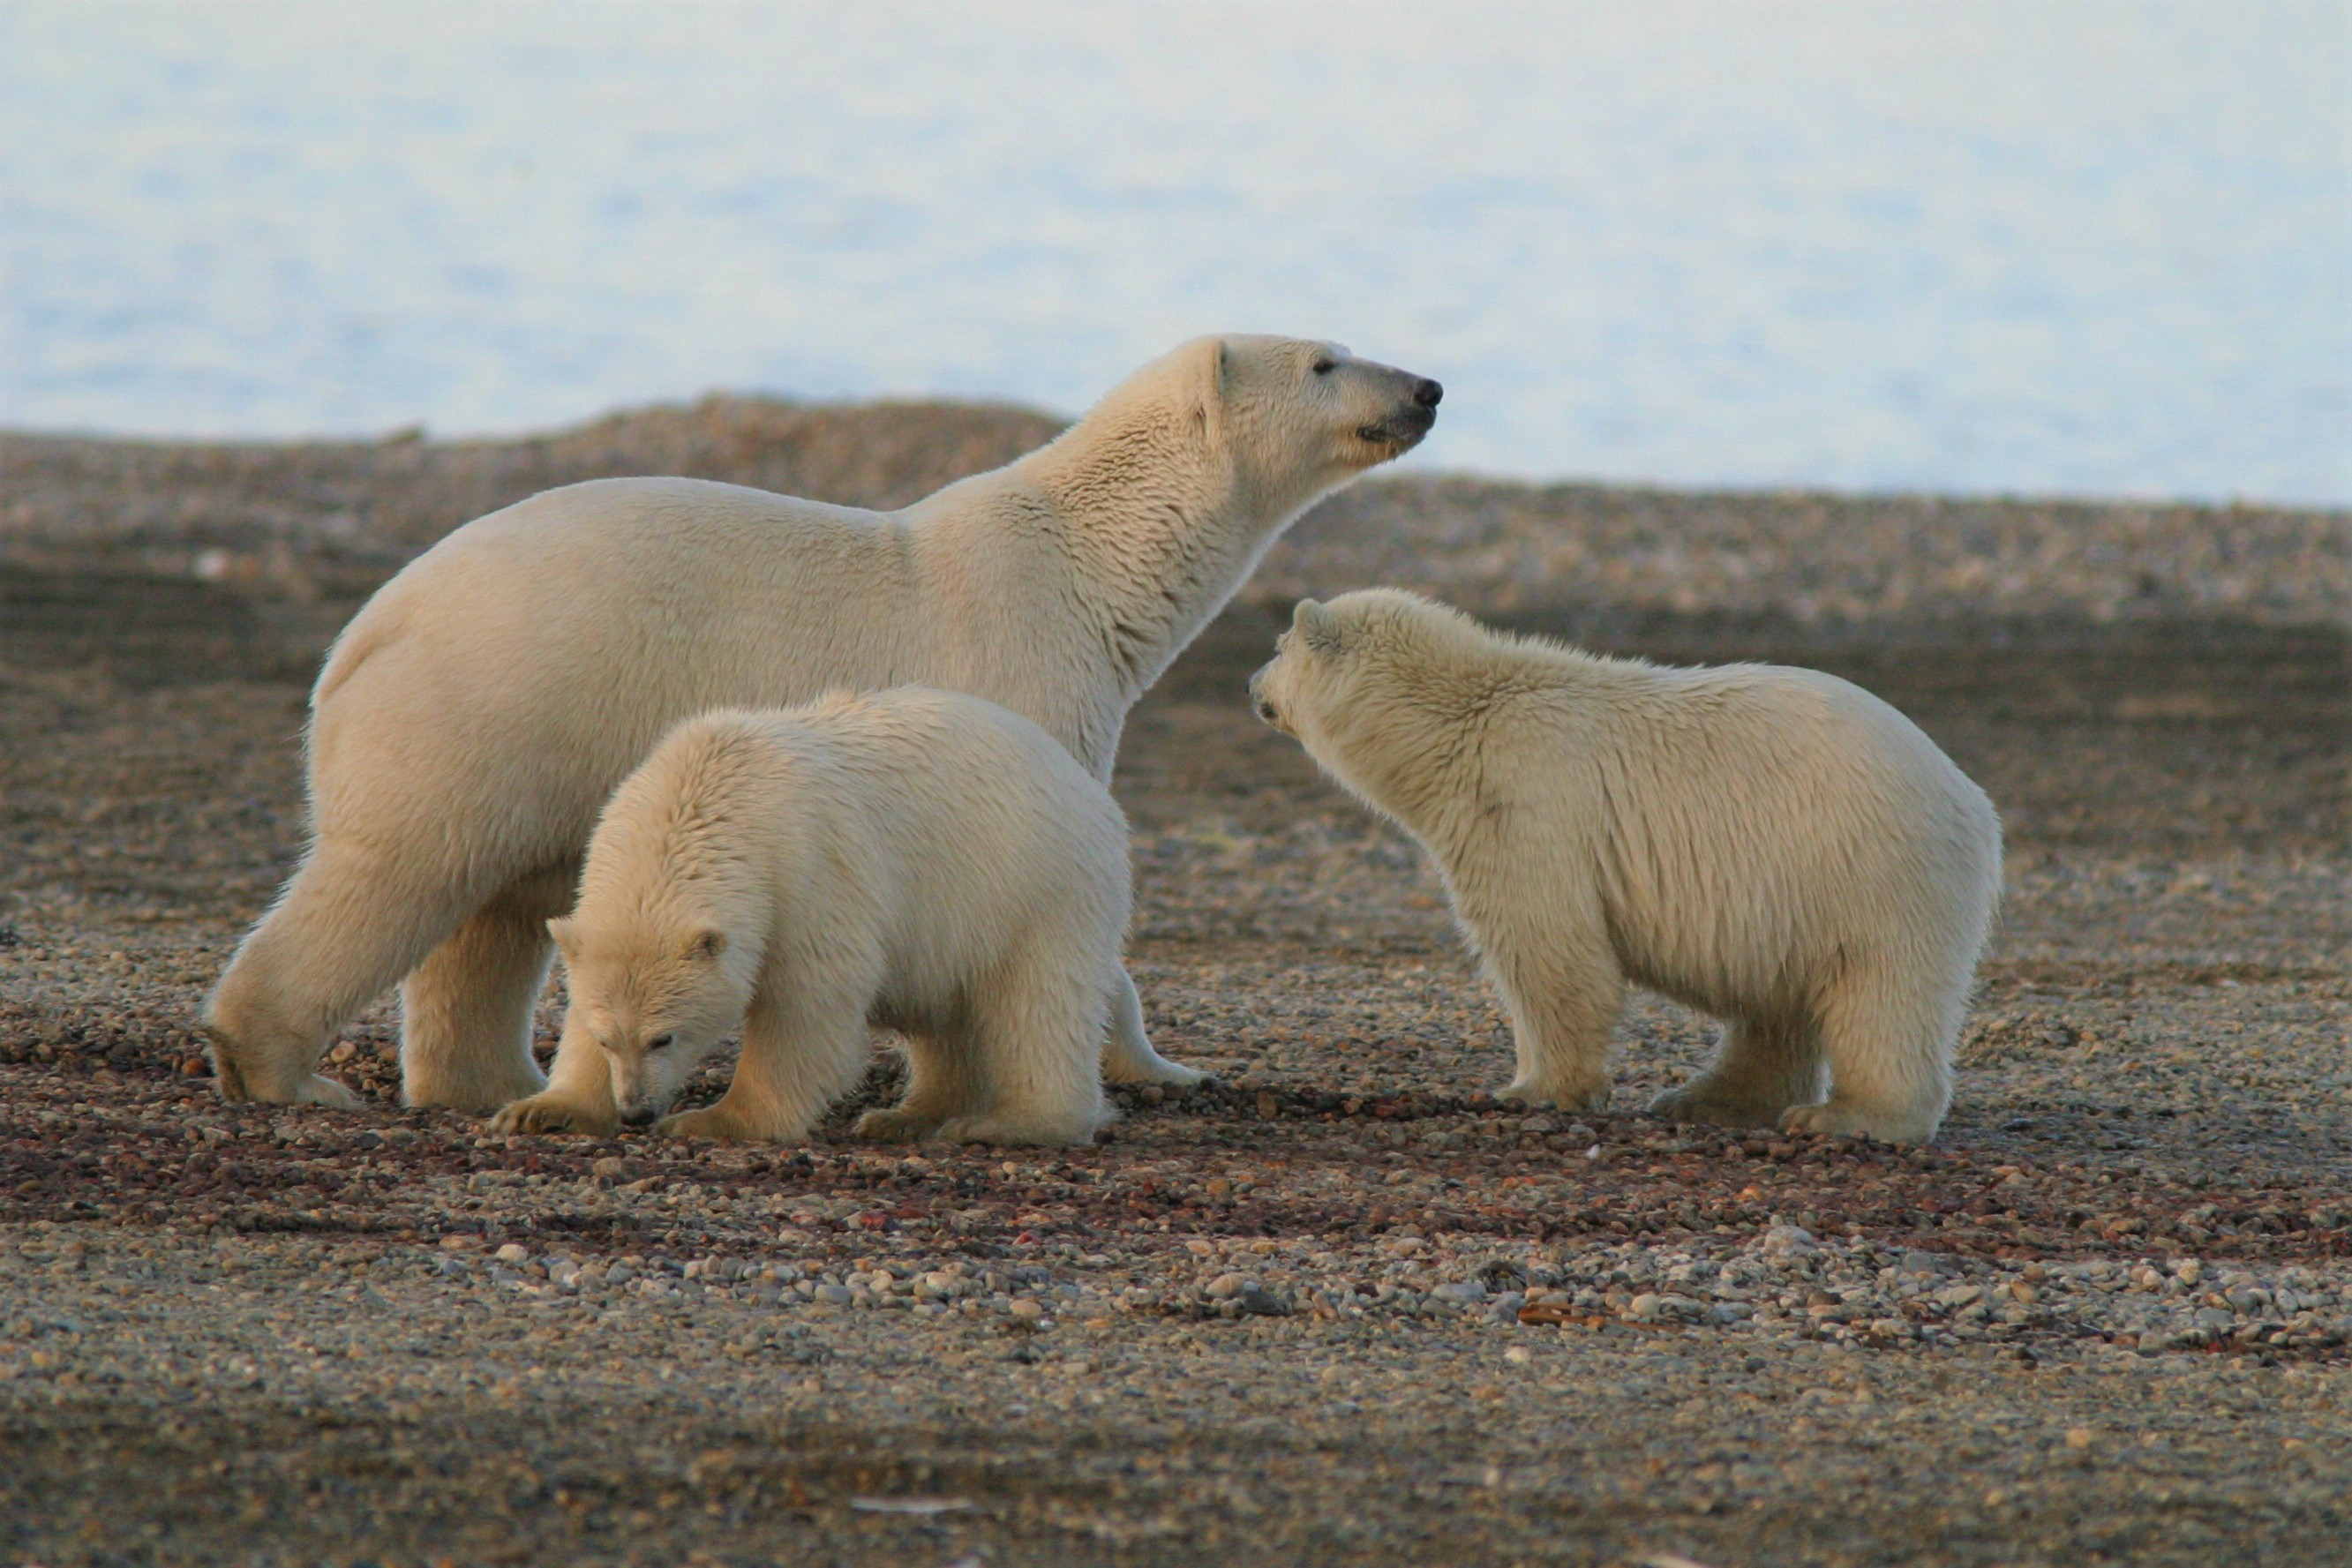 An adult polar bear with two large cubs on the bare gravel of a barrier island.